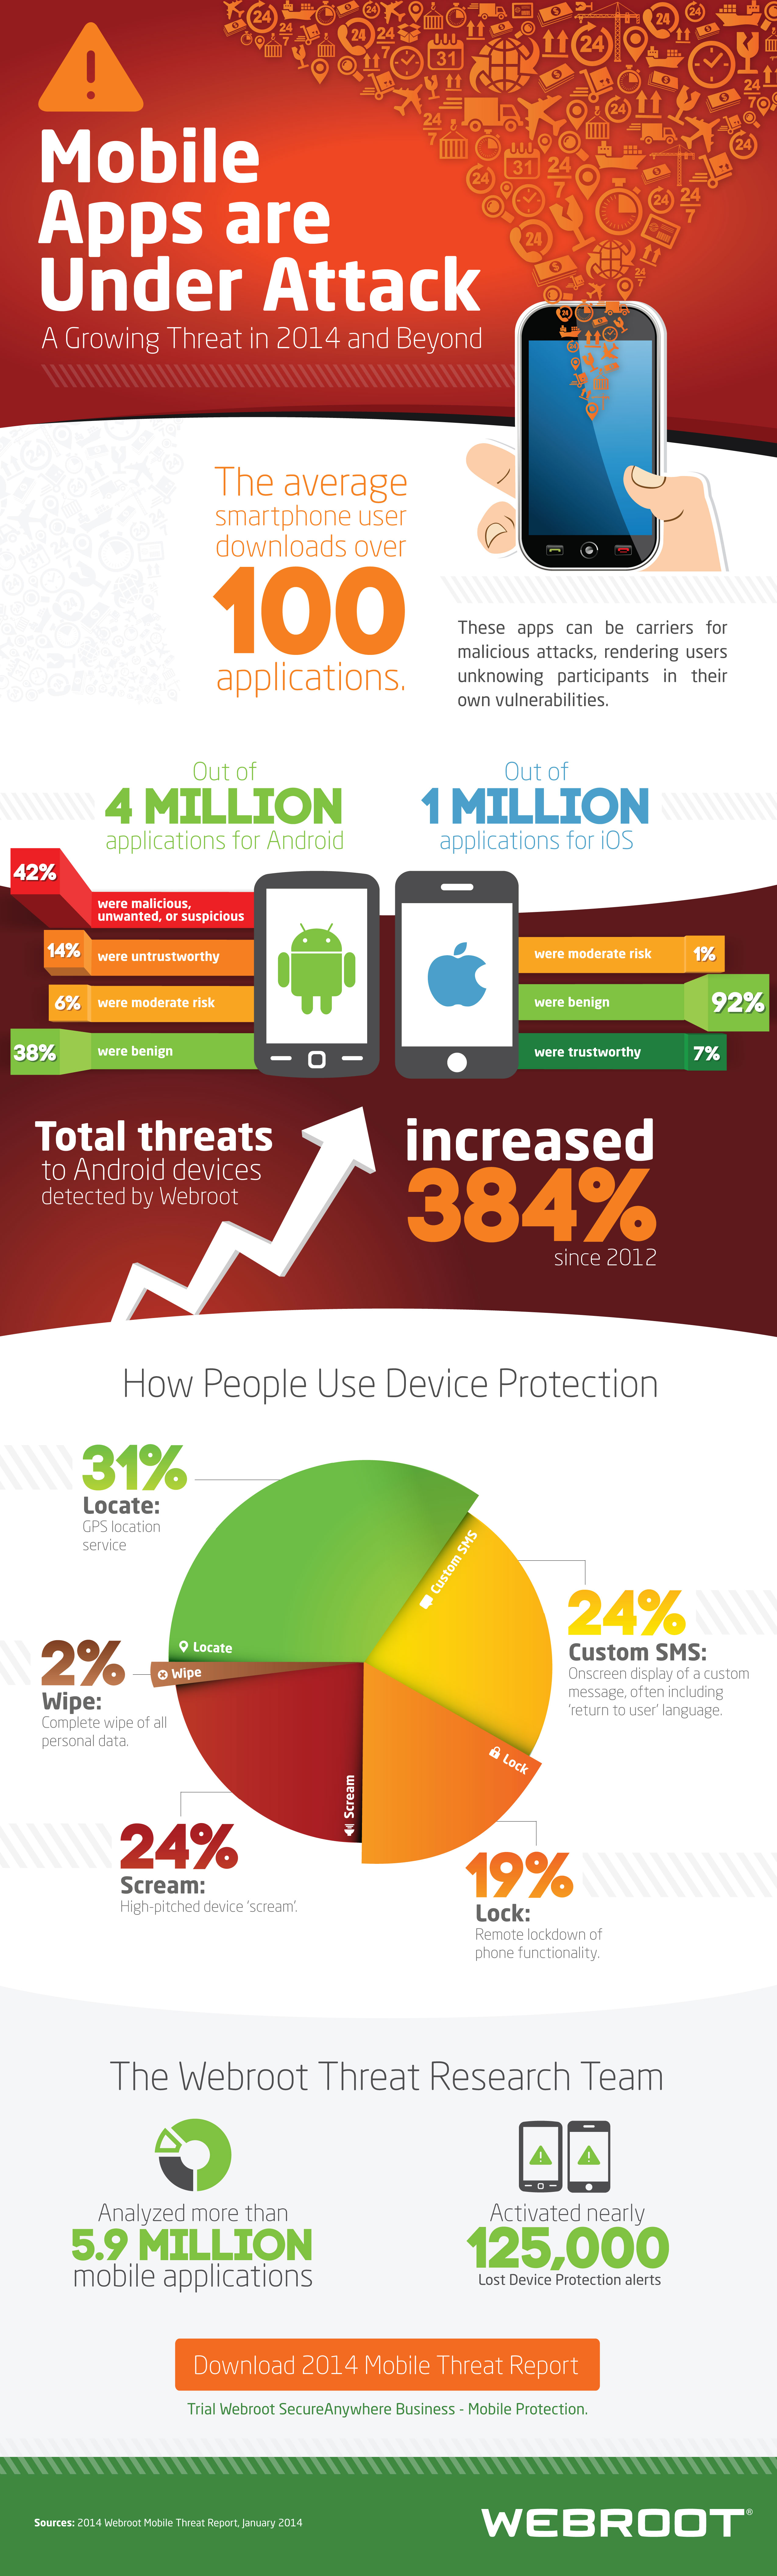 Mobile Apps are Under Attack - infographic